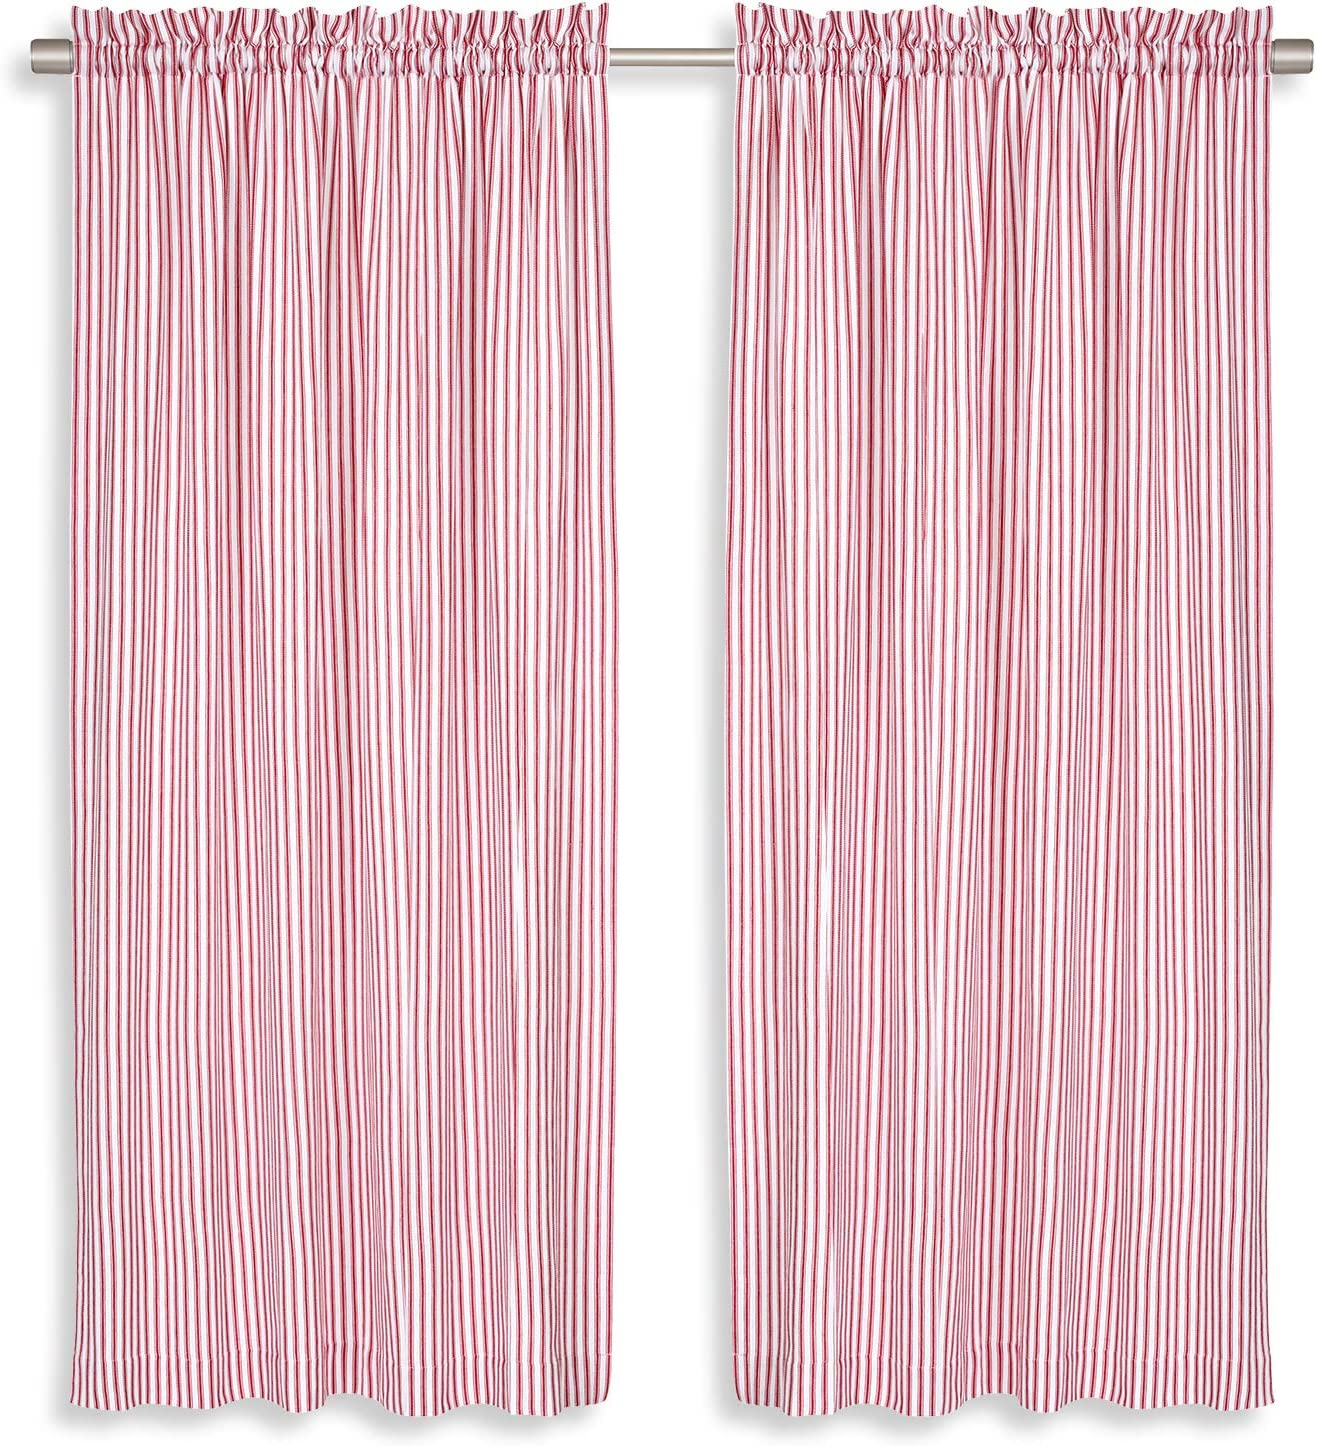 Cackleberry Home Red and White Ticking Stripe Woven Cotton Panel Curtains 54 Inches W x 96 Inches L, Set of 2